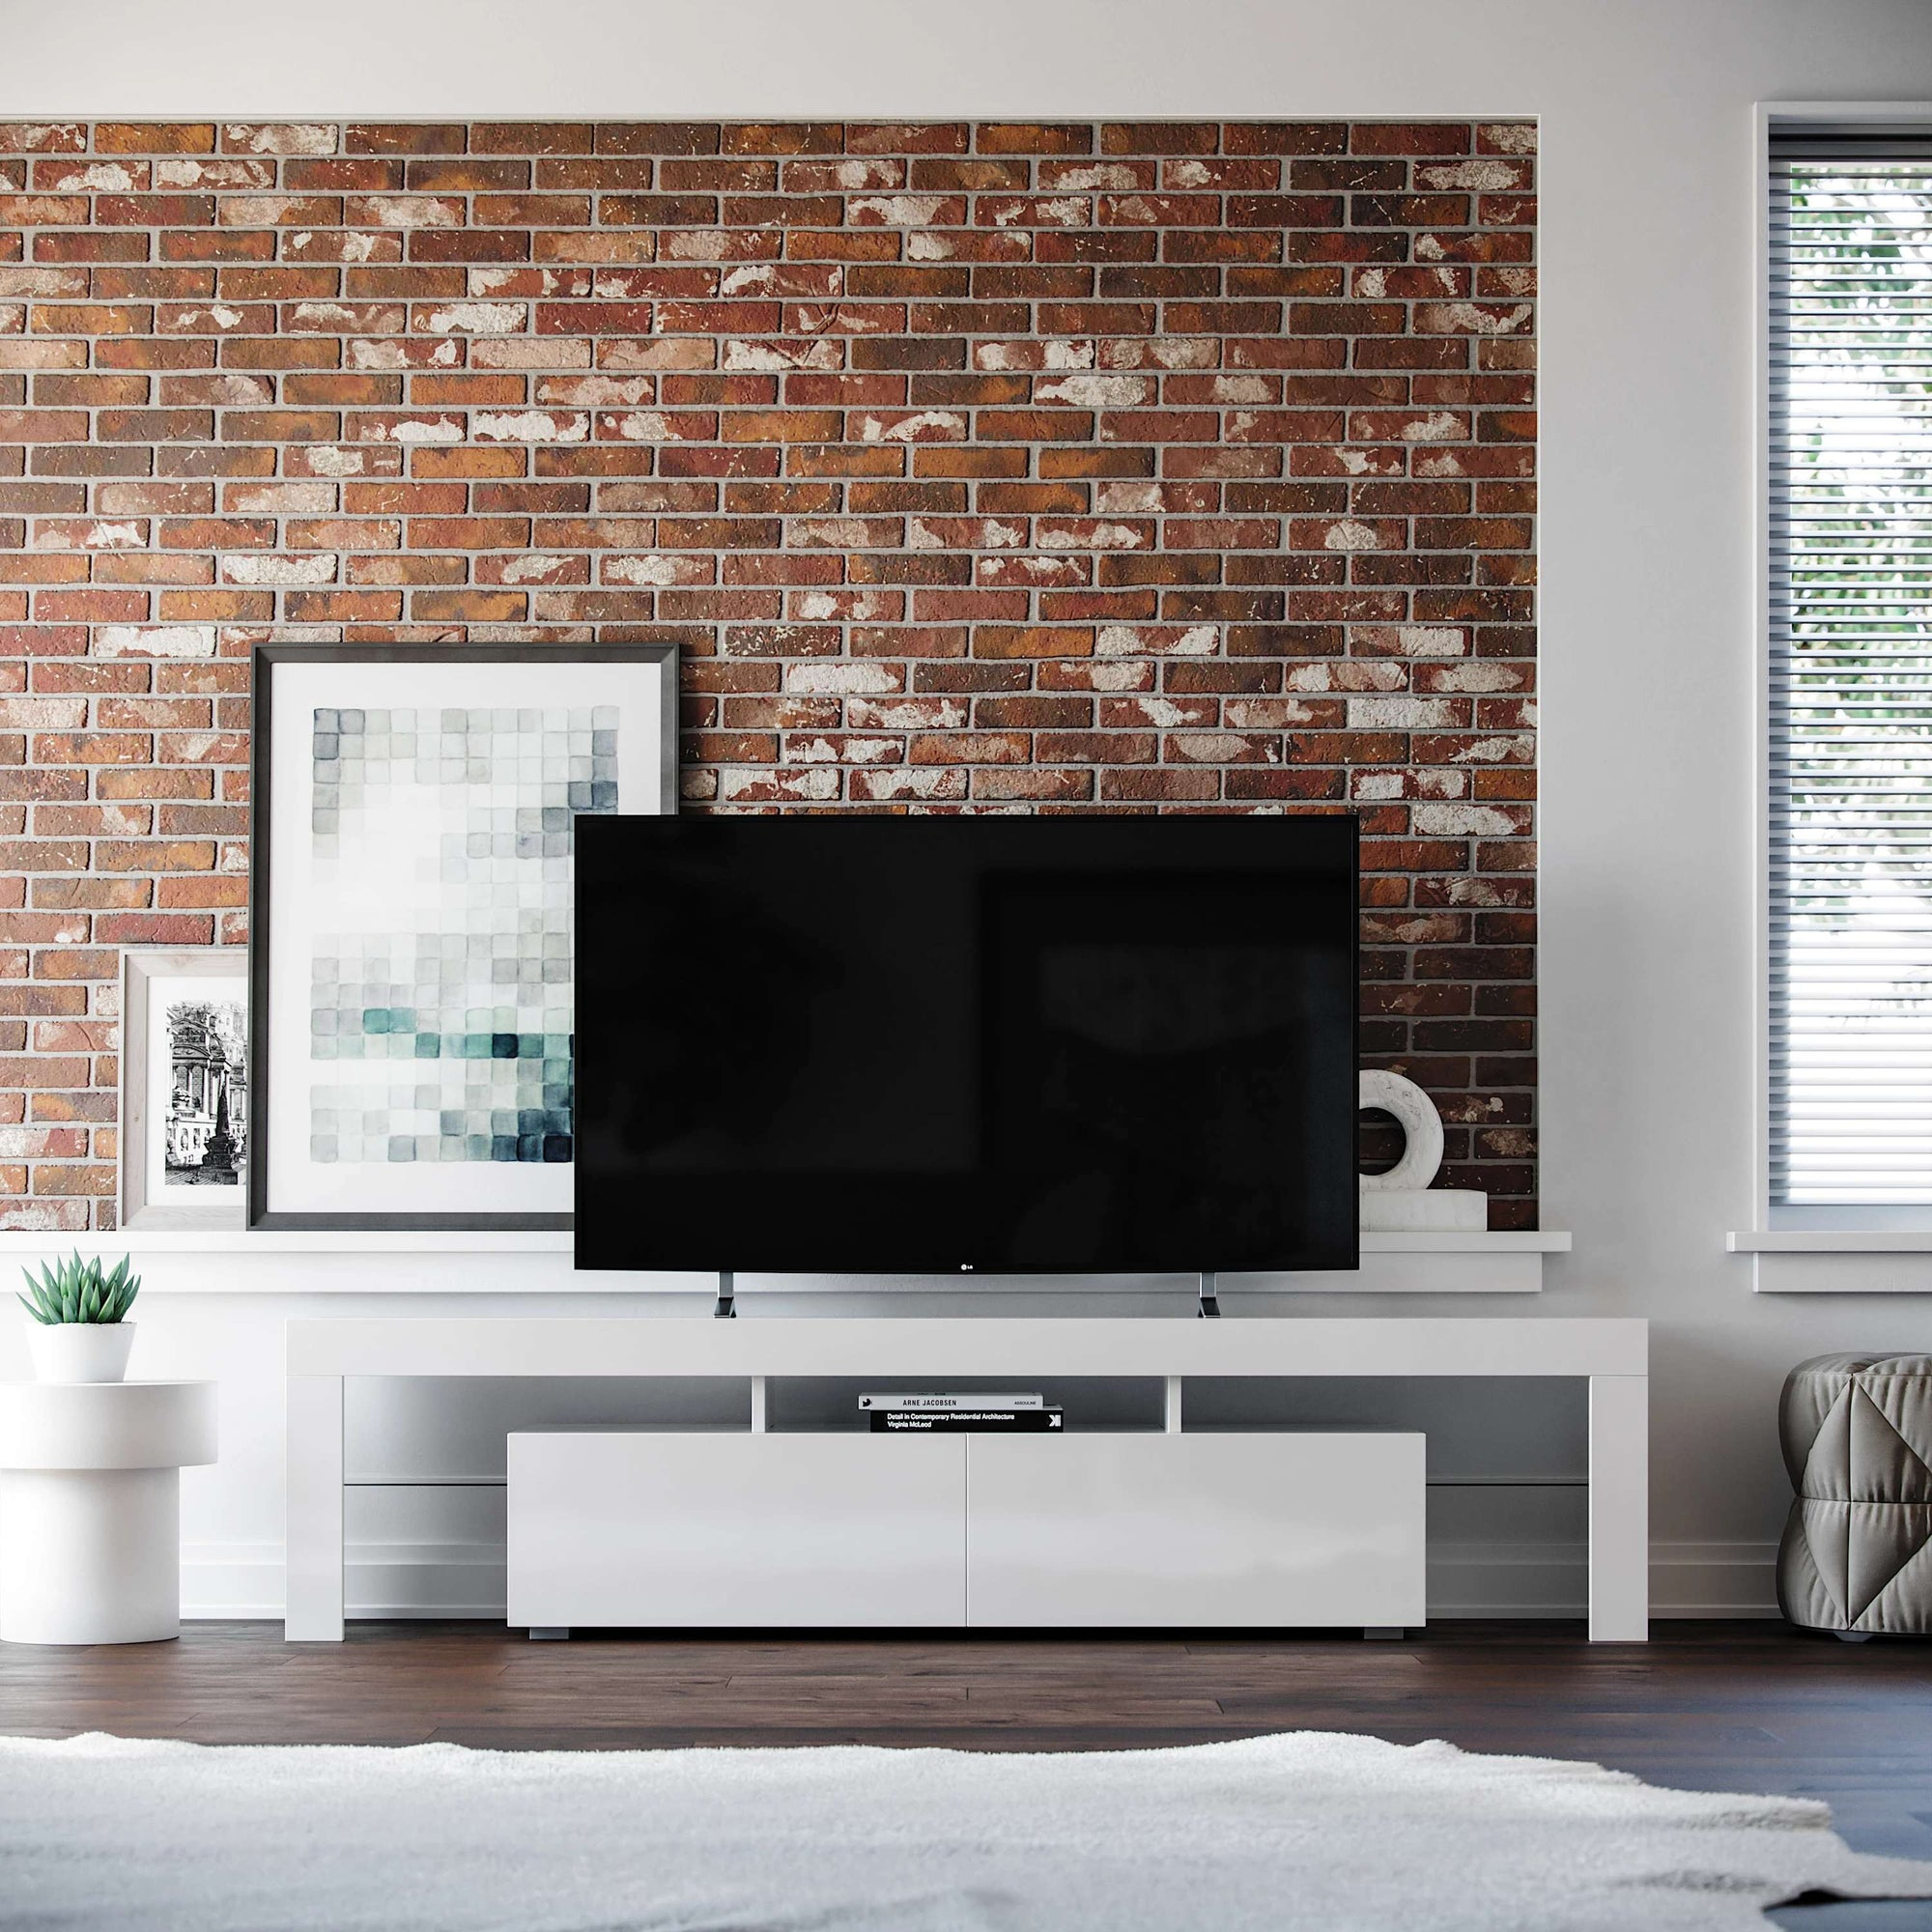 All White Copenhagen TV Stand All White Copenhagen TV Stand - Modern & Contemporary Design | Media Storage Cabinets | Media Console for Flat Screen TV's up to 80 inches | wide and low profile